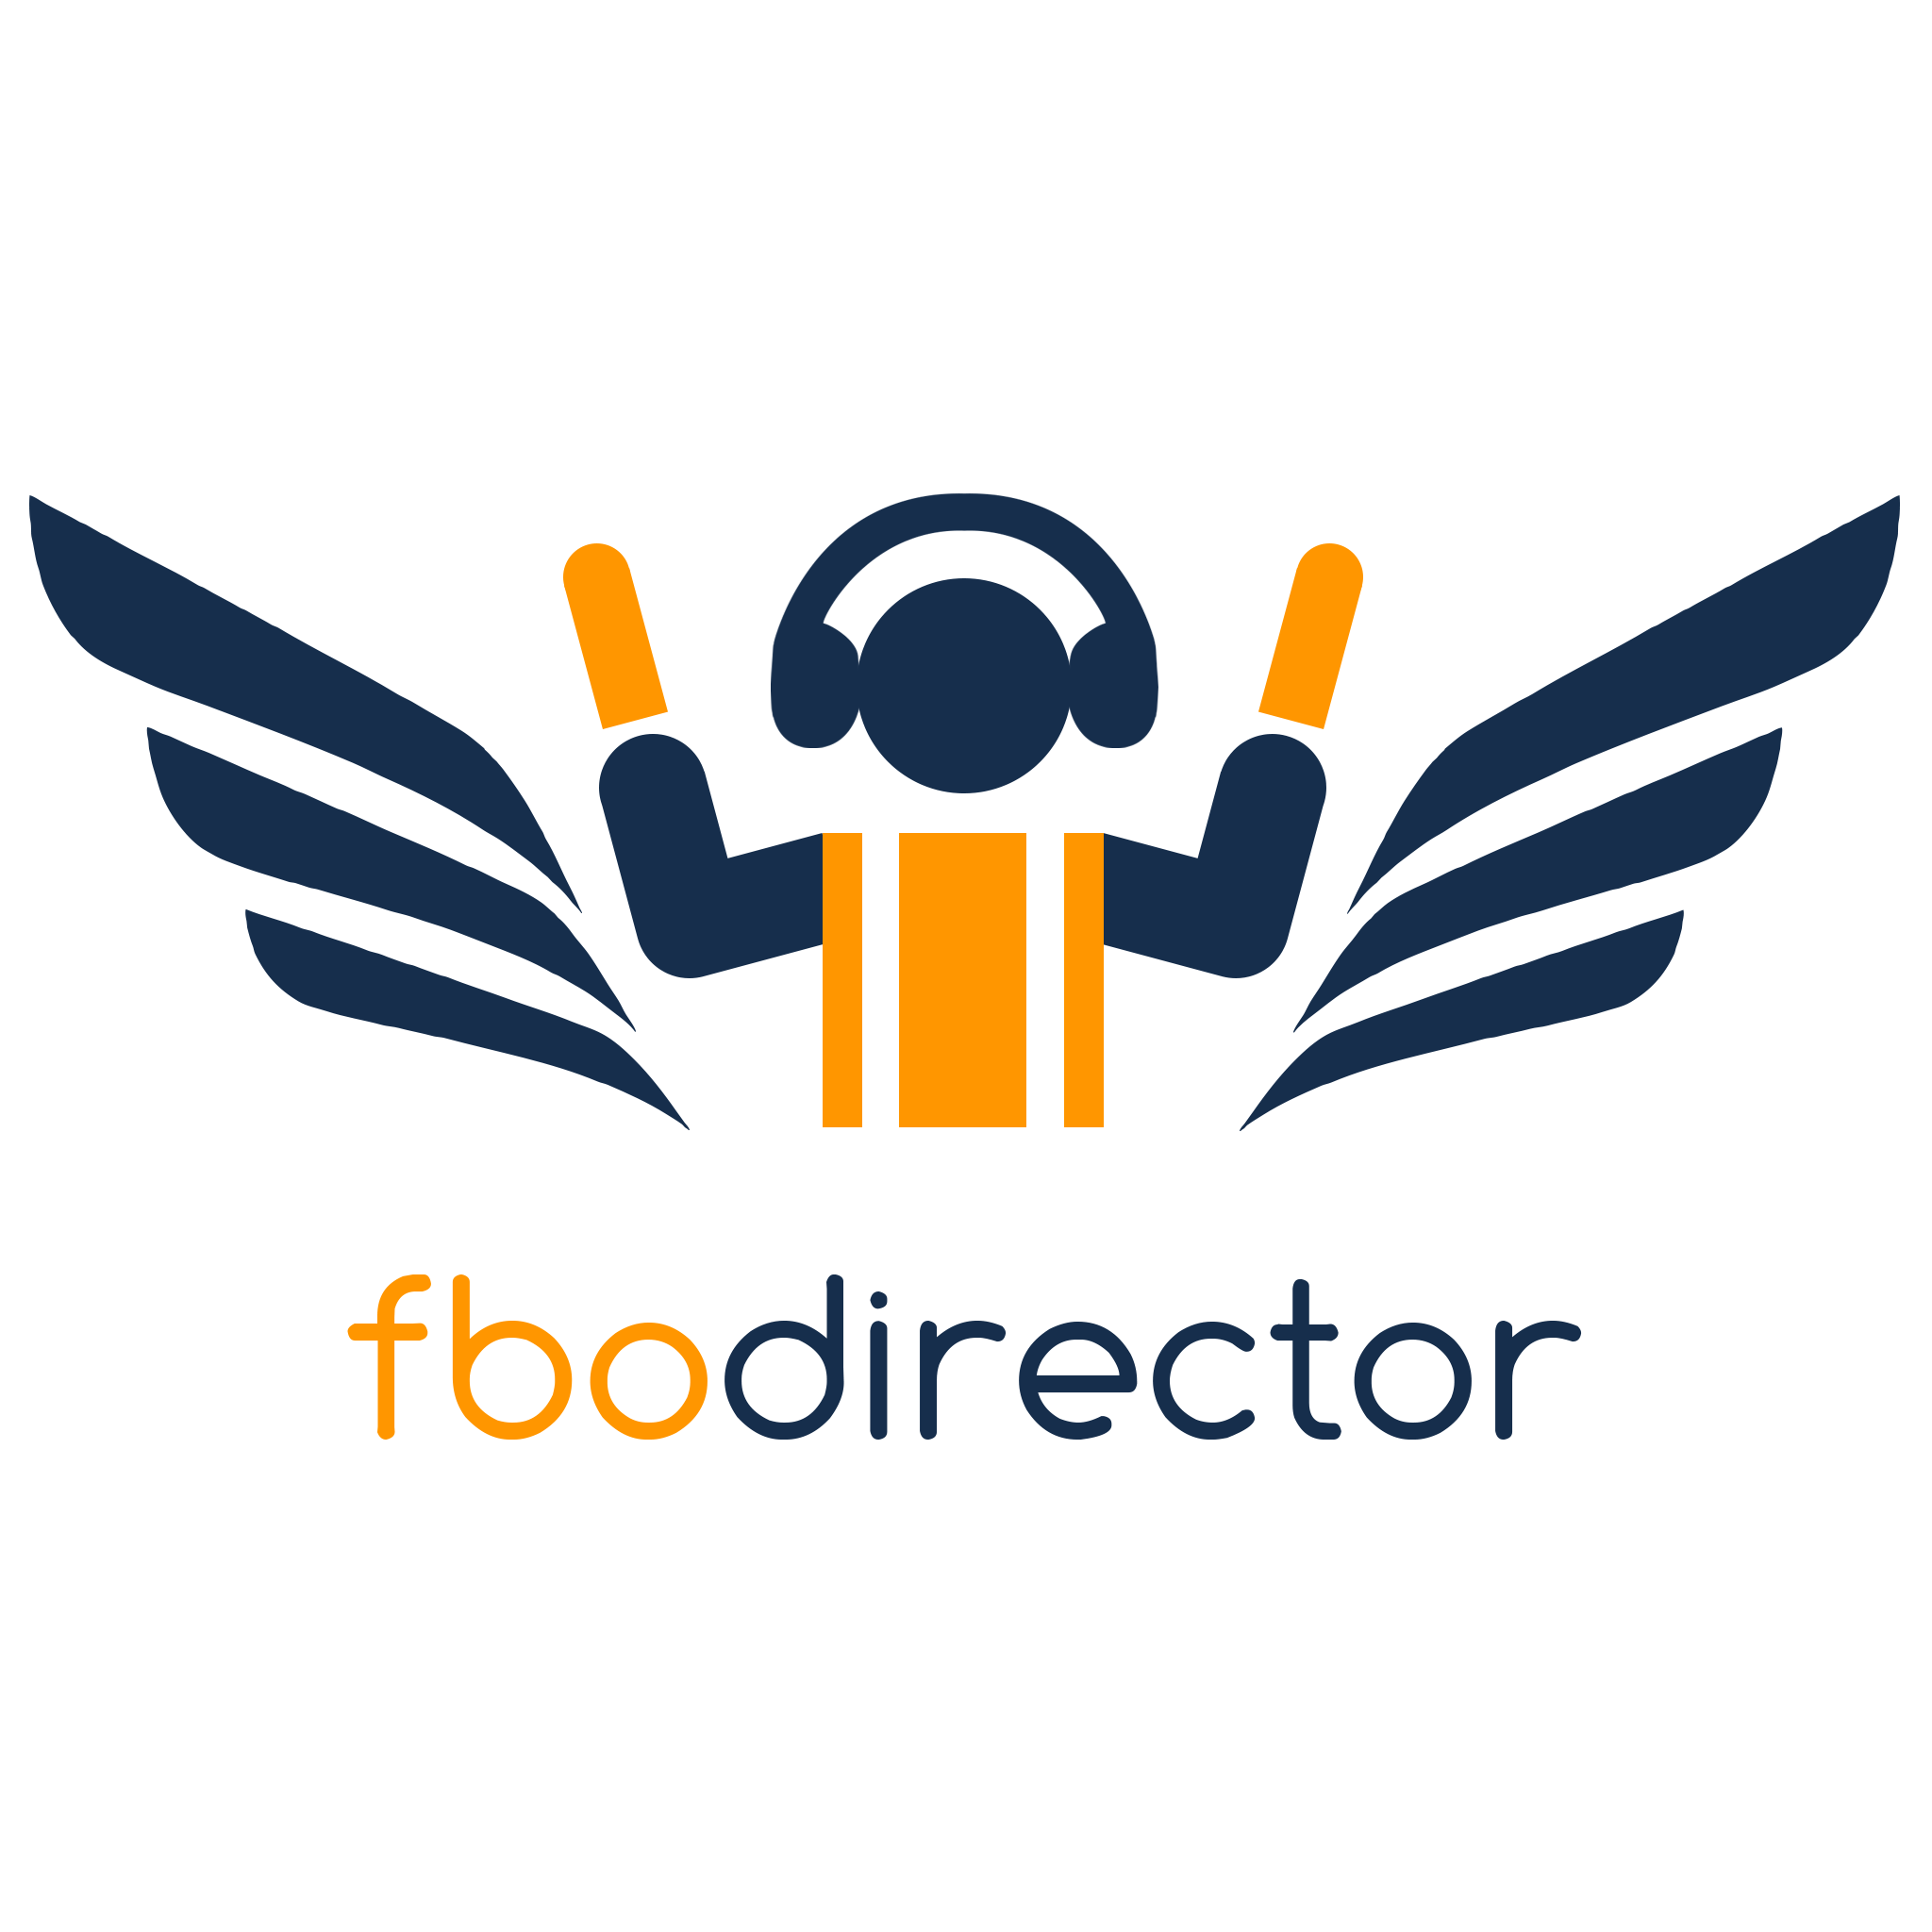 www.fbodirector.com is a greate application and a perfect example of licensing an invention